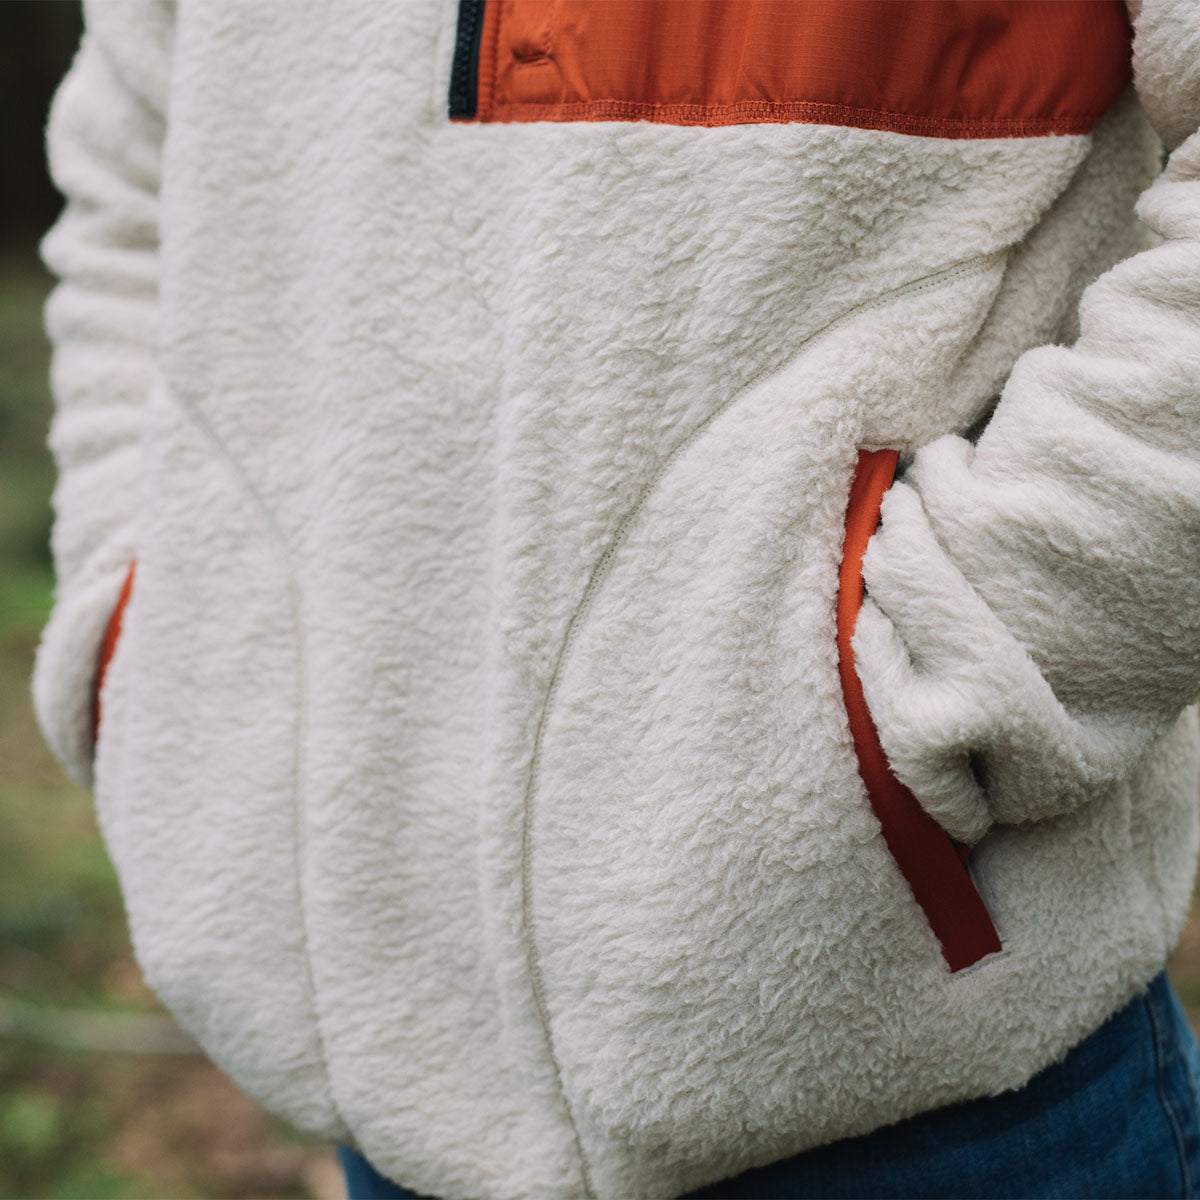 Offgrid 1/4 Zip Sherpa Fleece - Oatmeal/Rust image 5